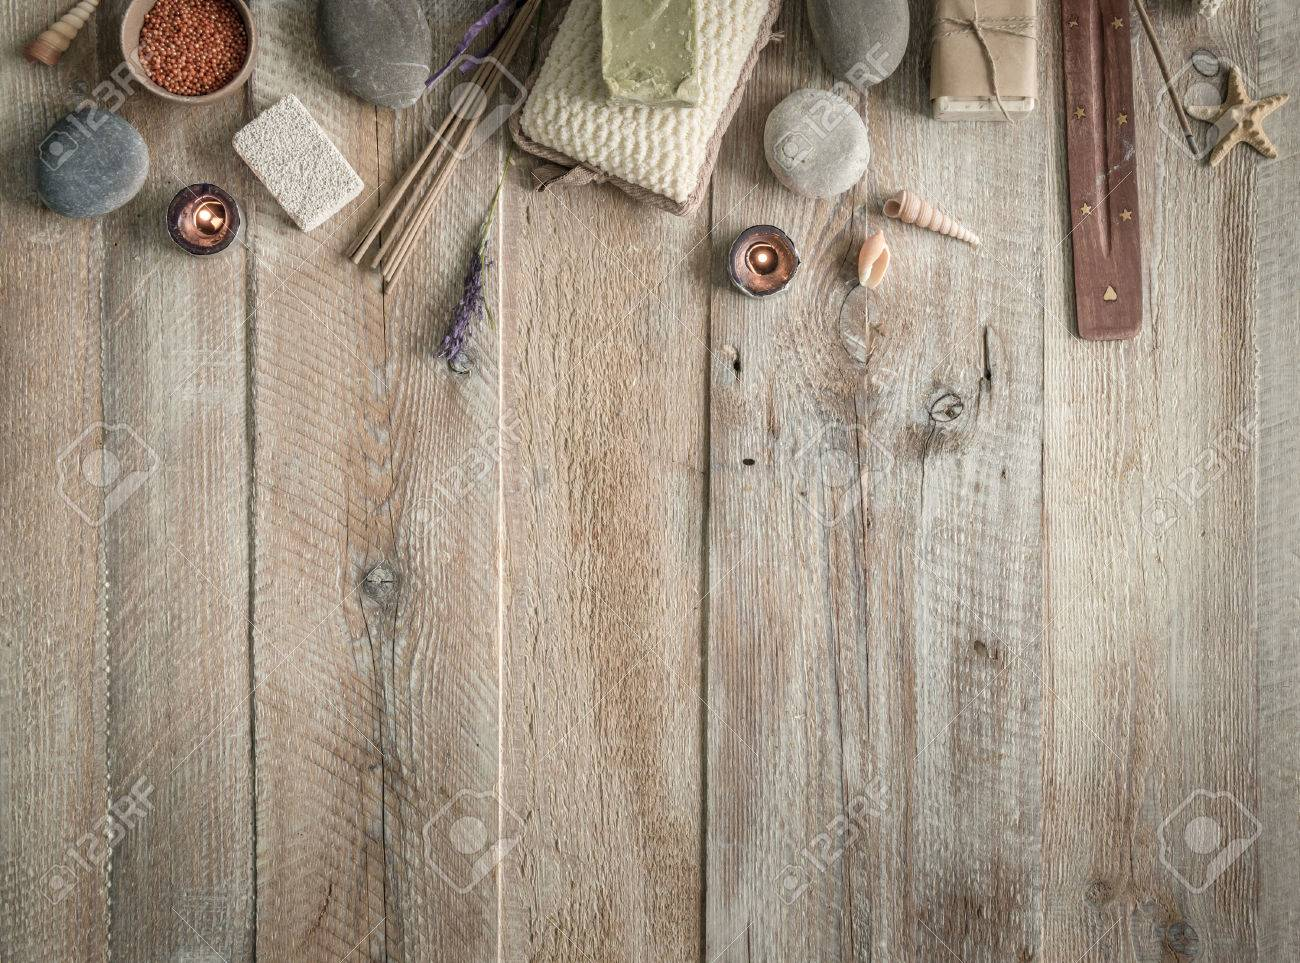 Composition of spa treatment items on the wooden table with space for text. Top view - 46655683